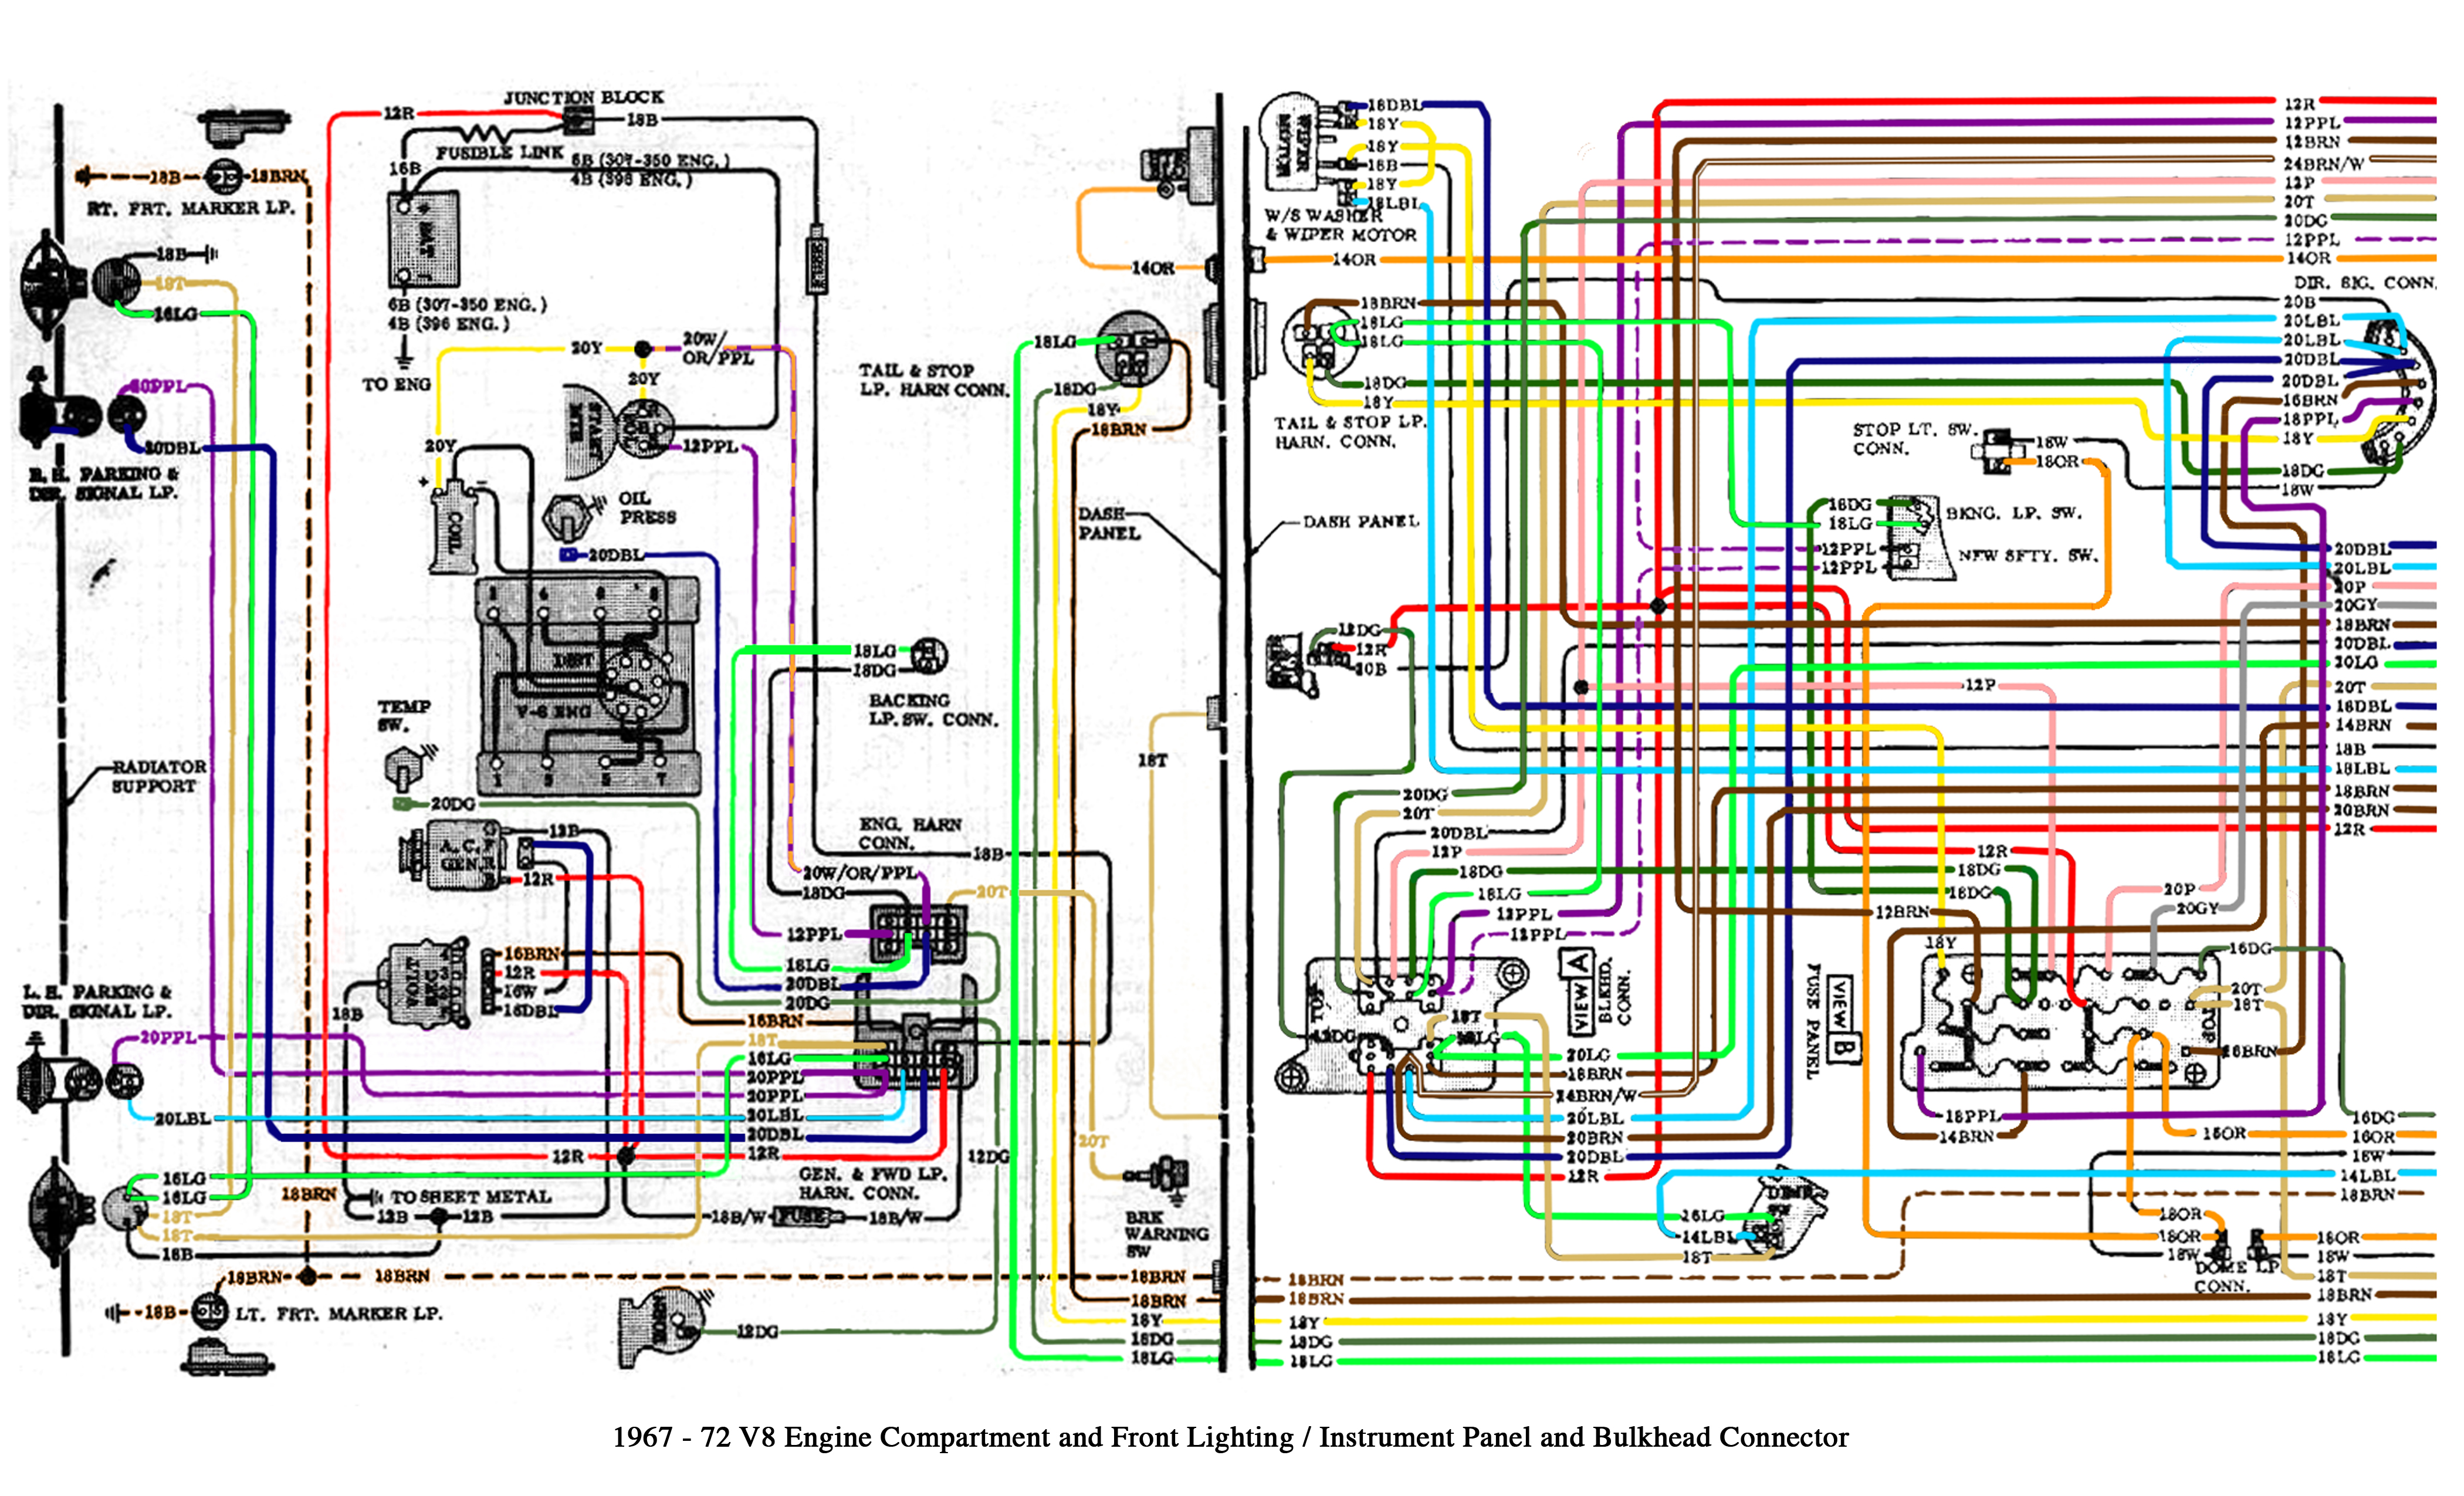 3397411656_03c2a8064d_o color wiring diagram finished the 1947 present chevrolet & gmc 2000 chevy silverado wiring diagram color code at edmiracle.co